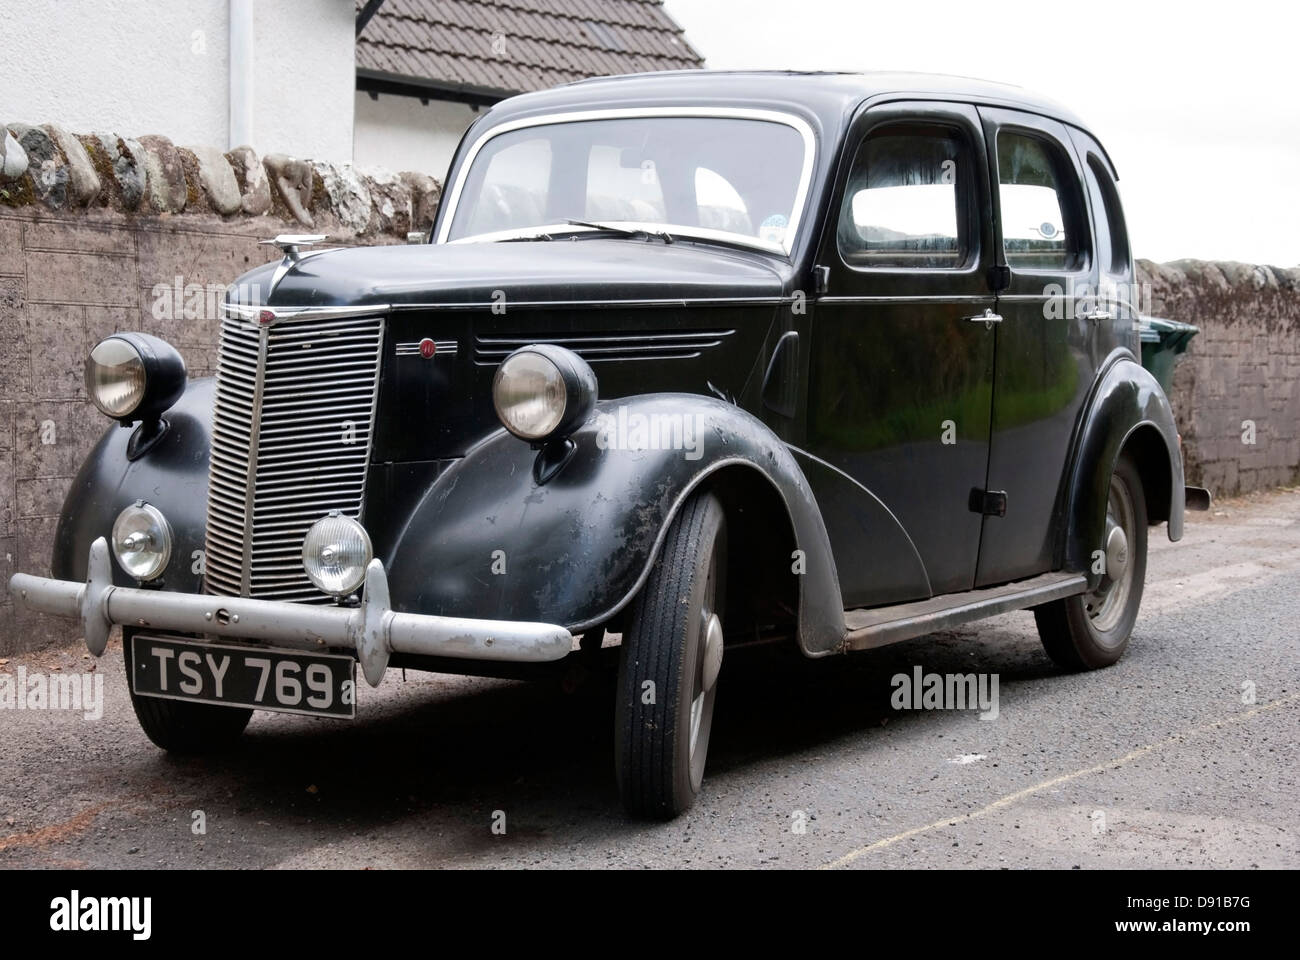 Old 1947 black ford prefect e93a saloon car